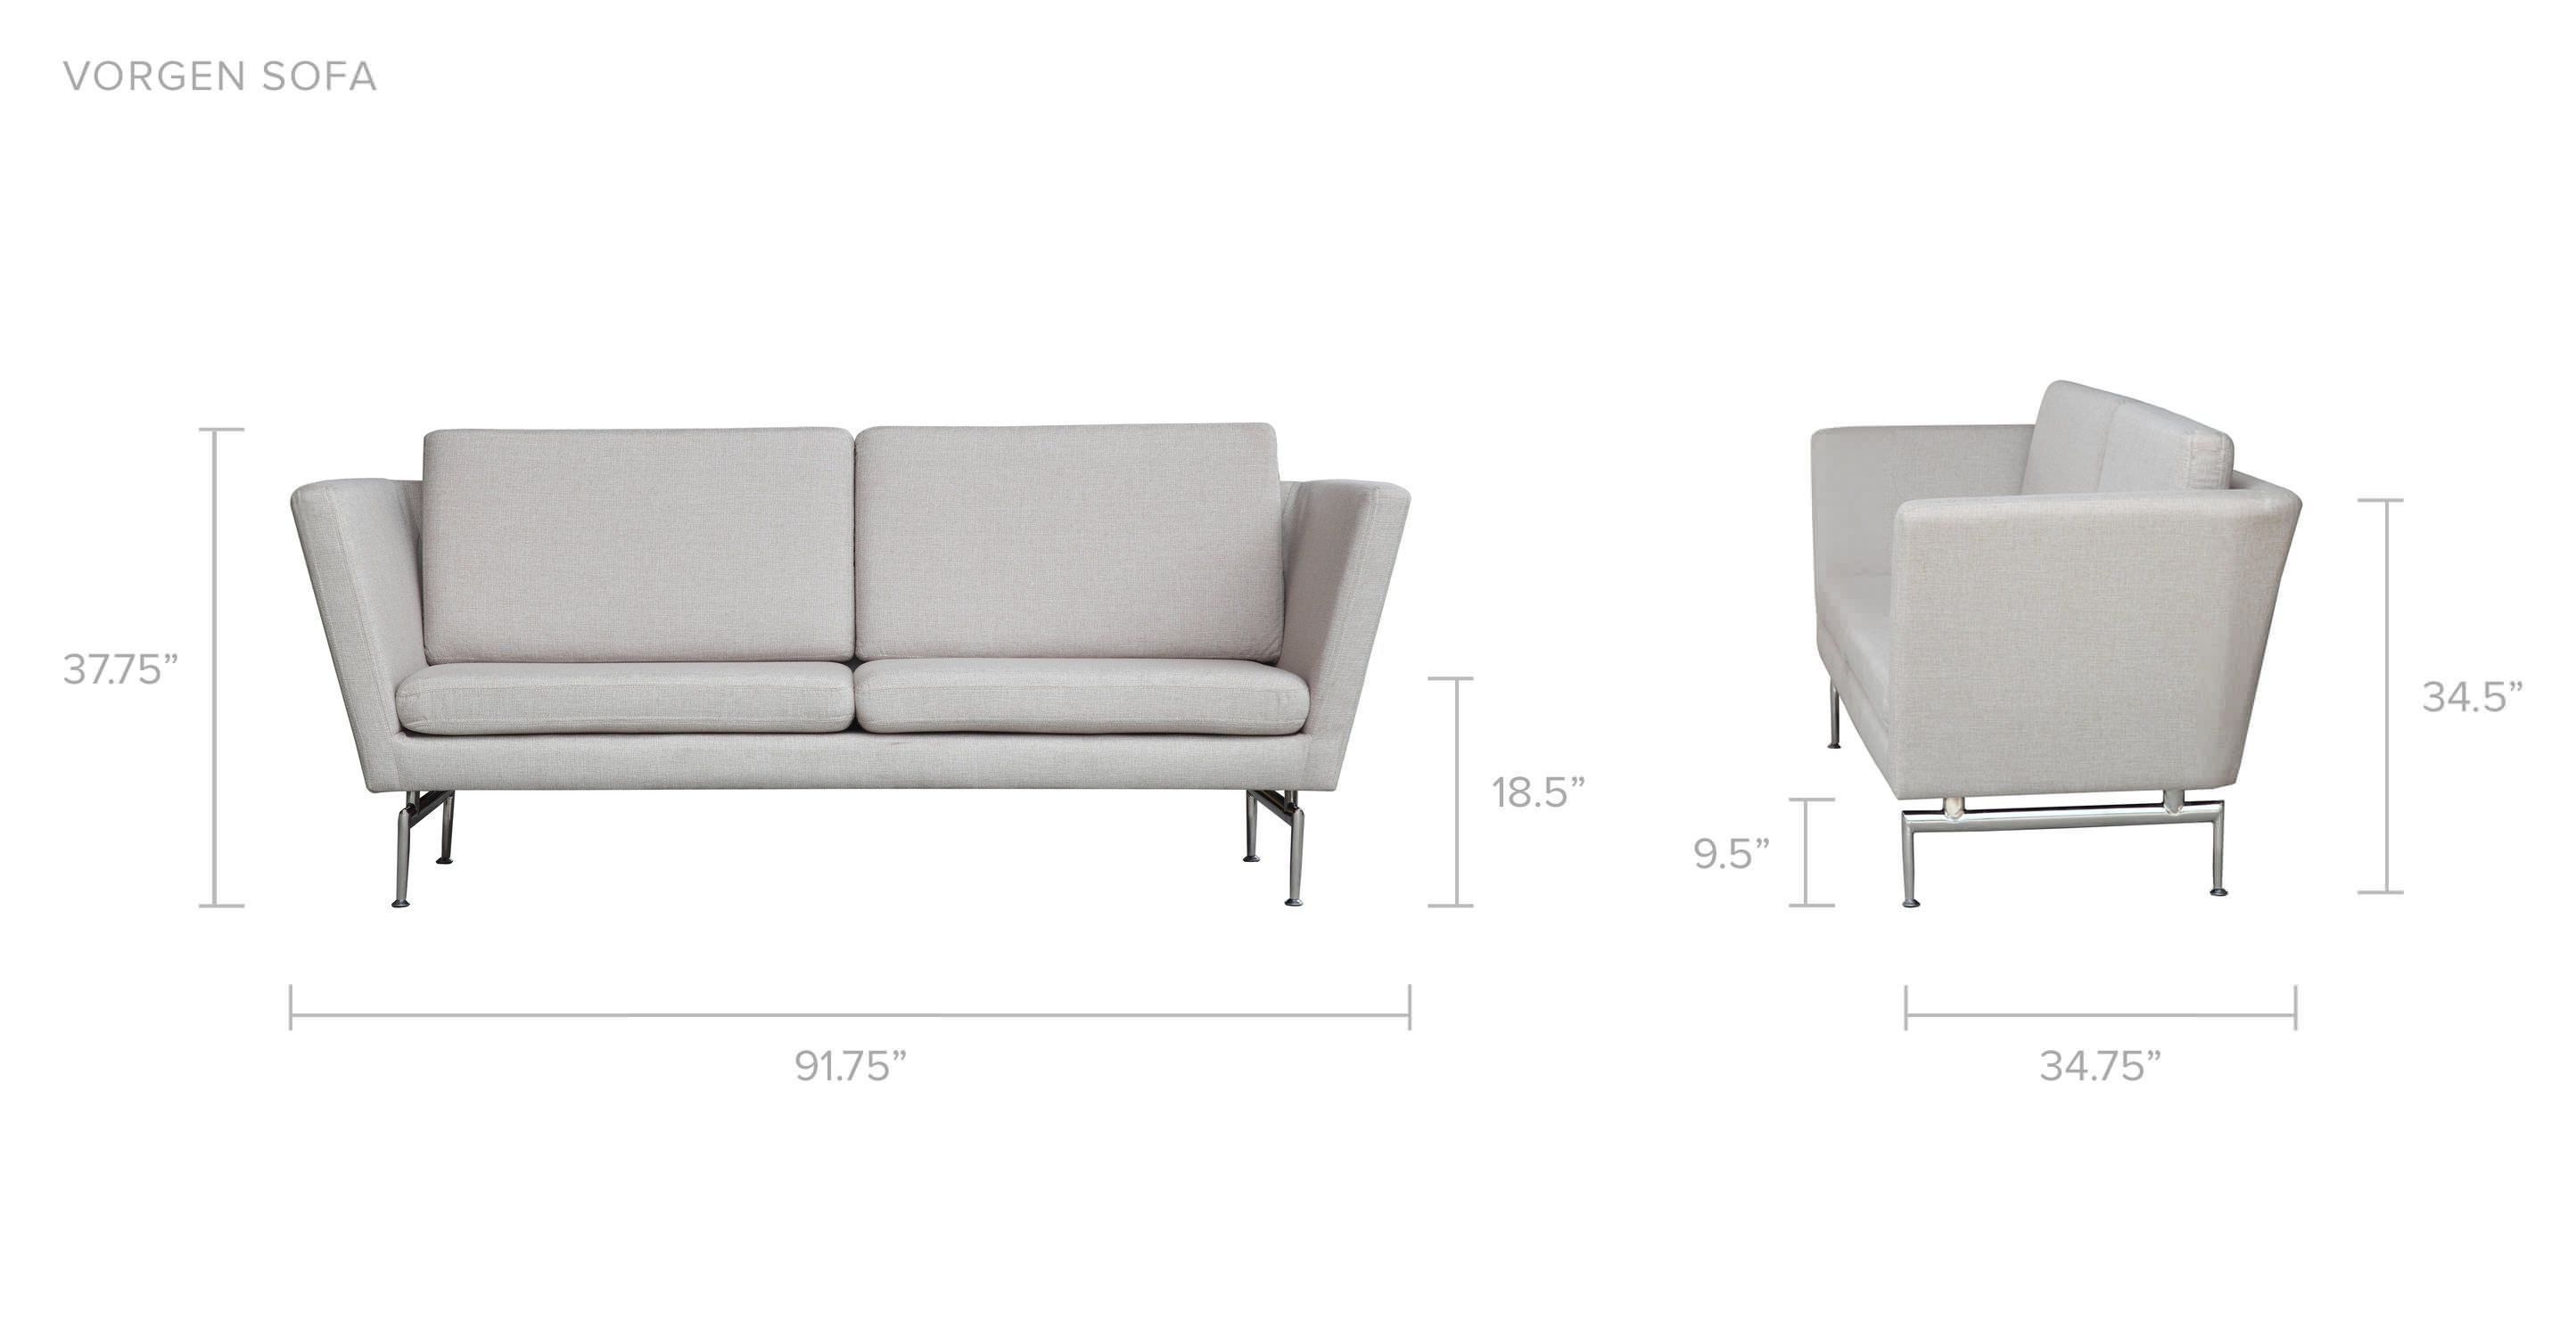 Looking for modern furniture? Kardiel specializes in mid-century modern furnishing designs and decor at competitive prices. Click here to view our catalog.